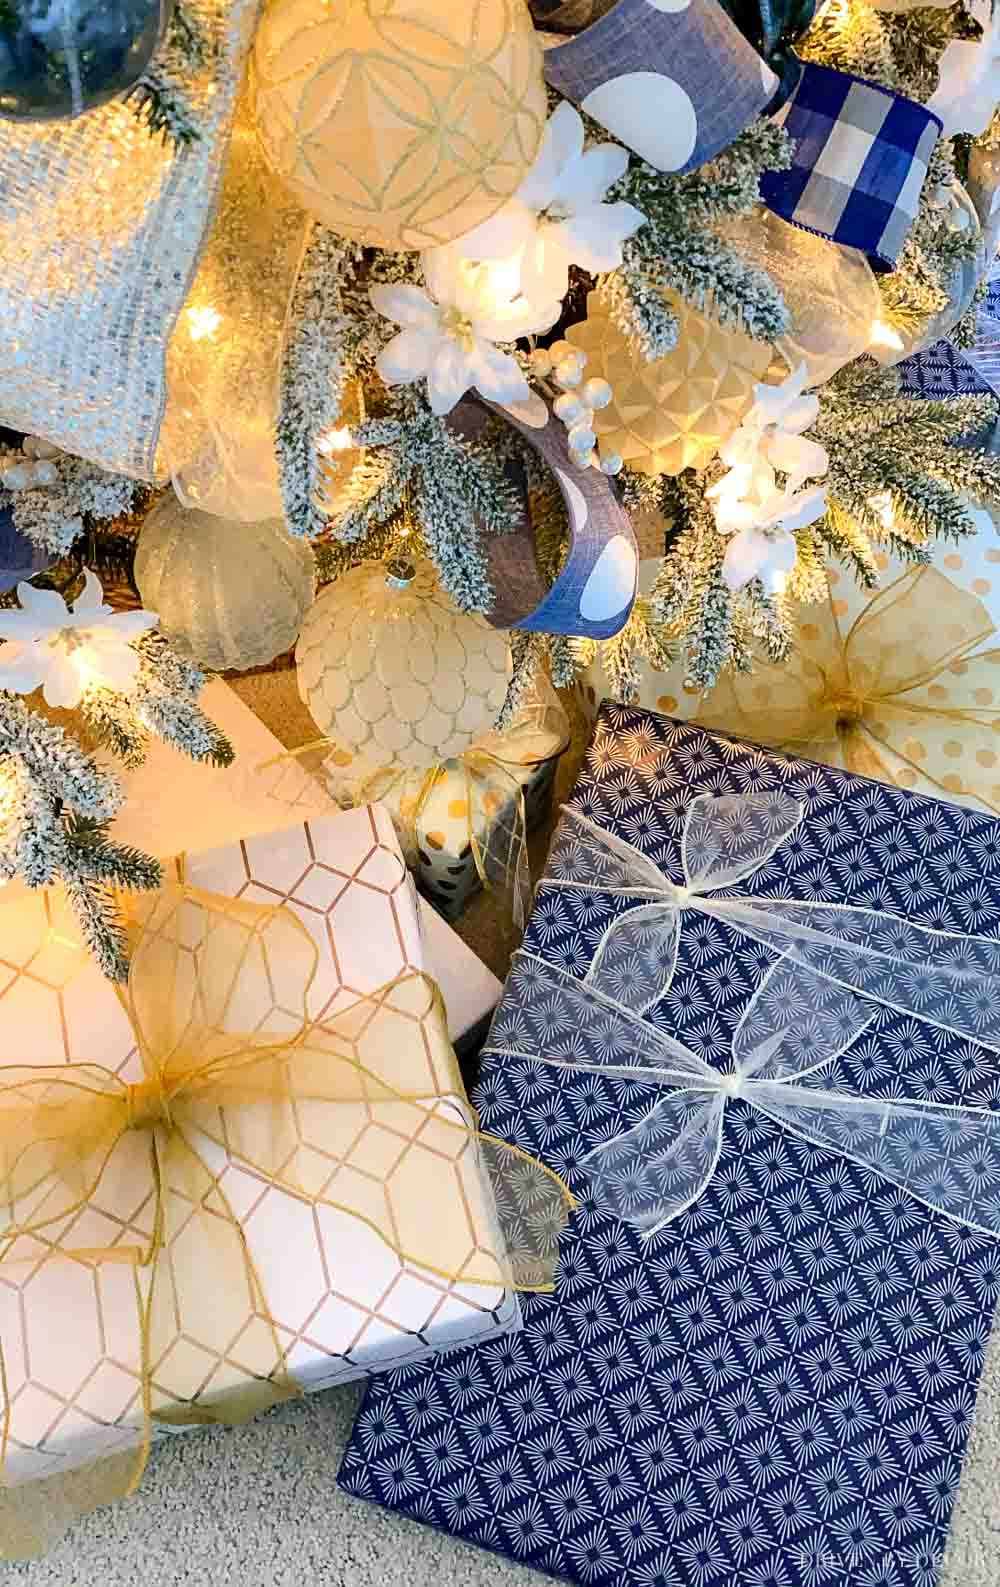 Packages wrapped in blue and white under the Christmas tree